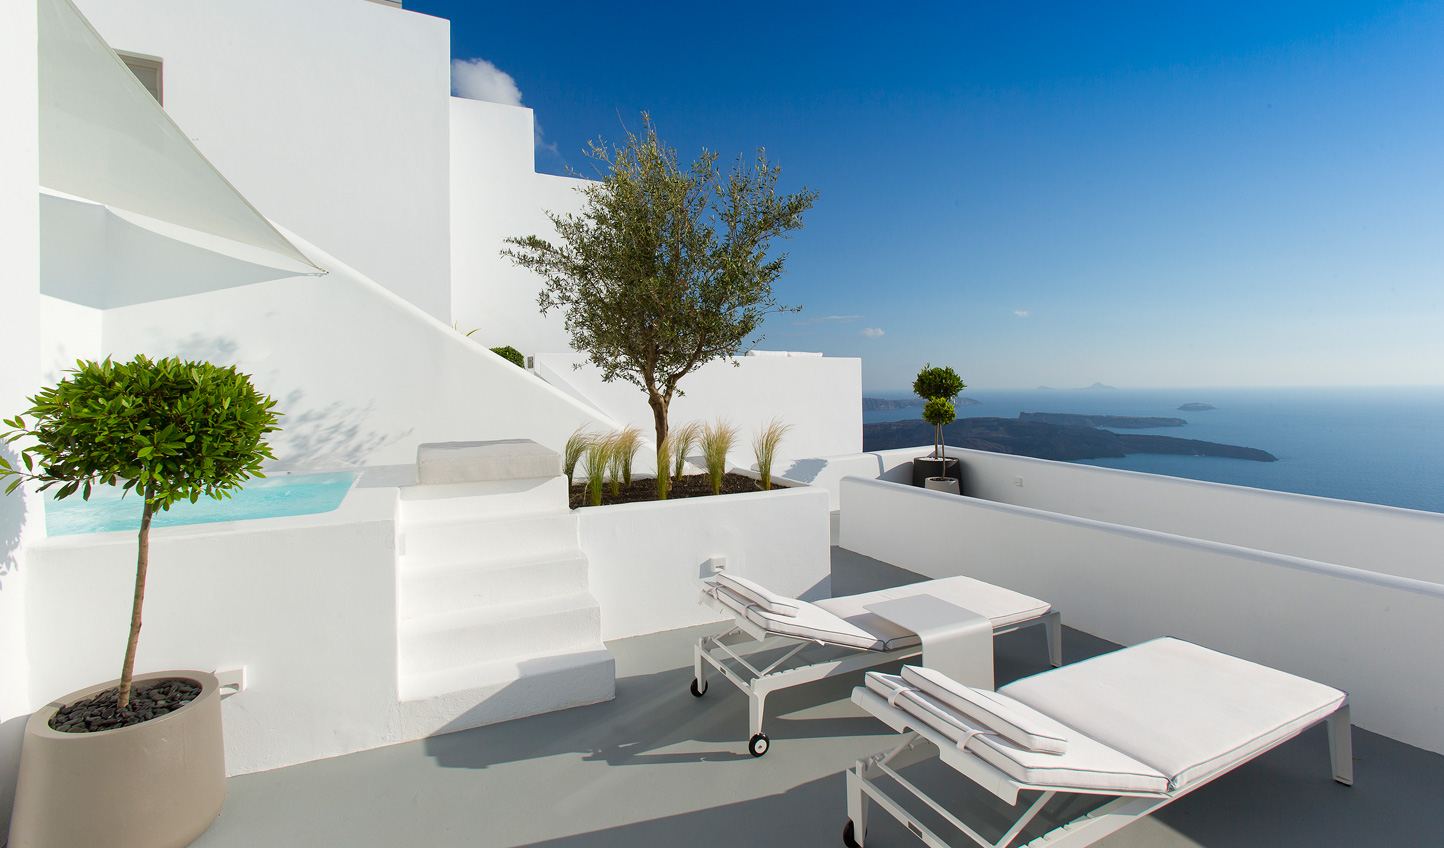 Enjoy views of the Aegean Sea from your private terrace